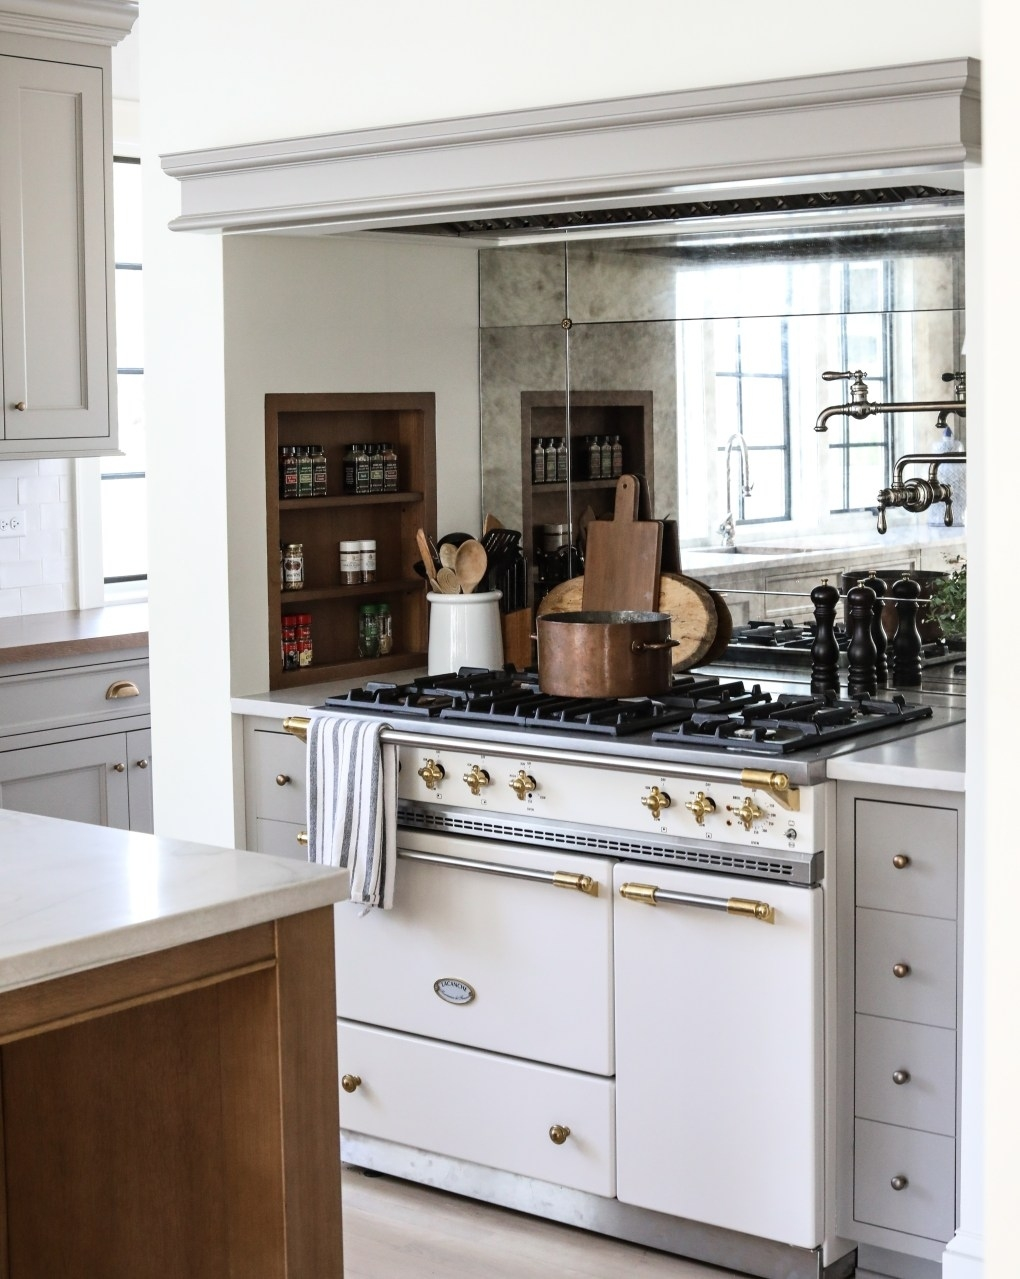 16 simple yet sophisticated kitchen design ideas - hello lovely inside Traditional Kitchen Designs Ideas